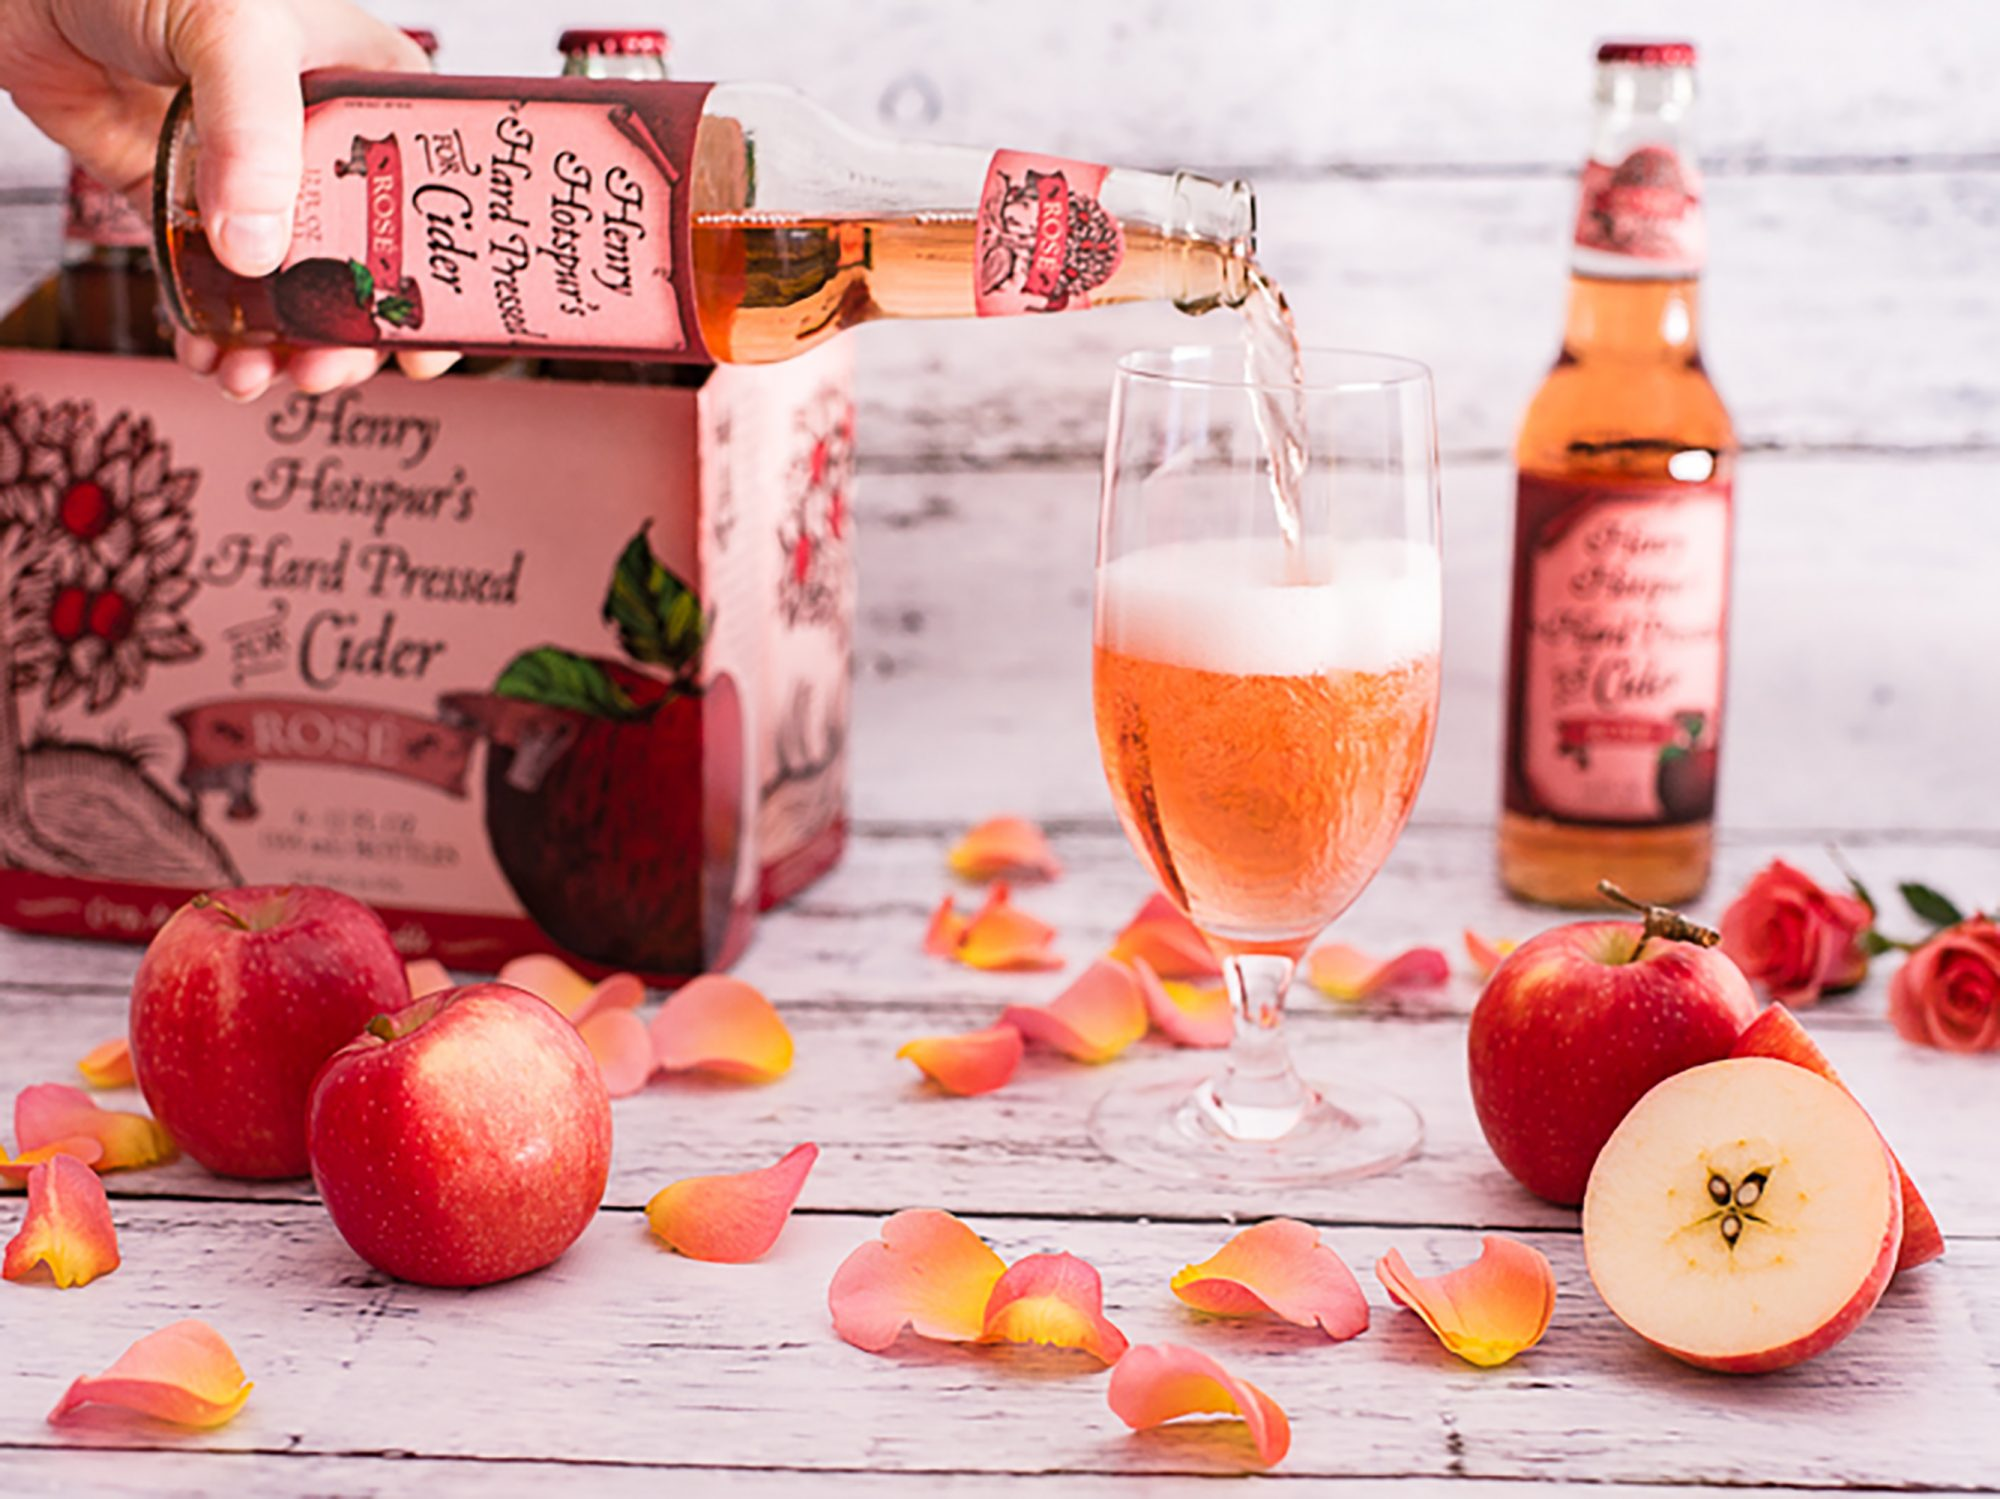 Trader Joe's Henry Hotspur's Hard-Pressed for Rosé Cider